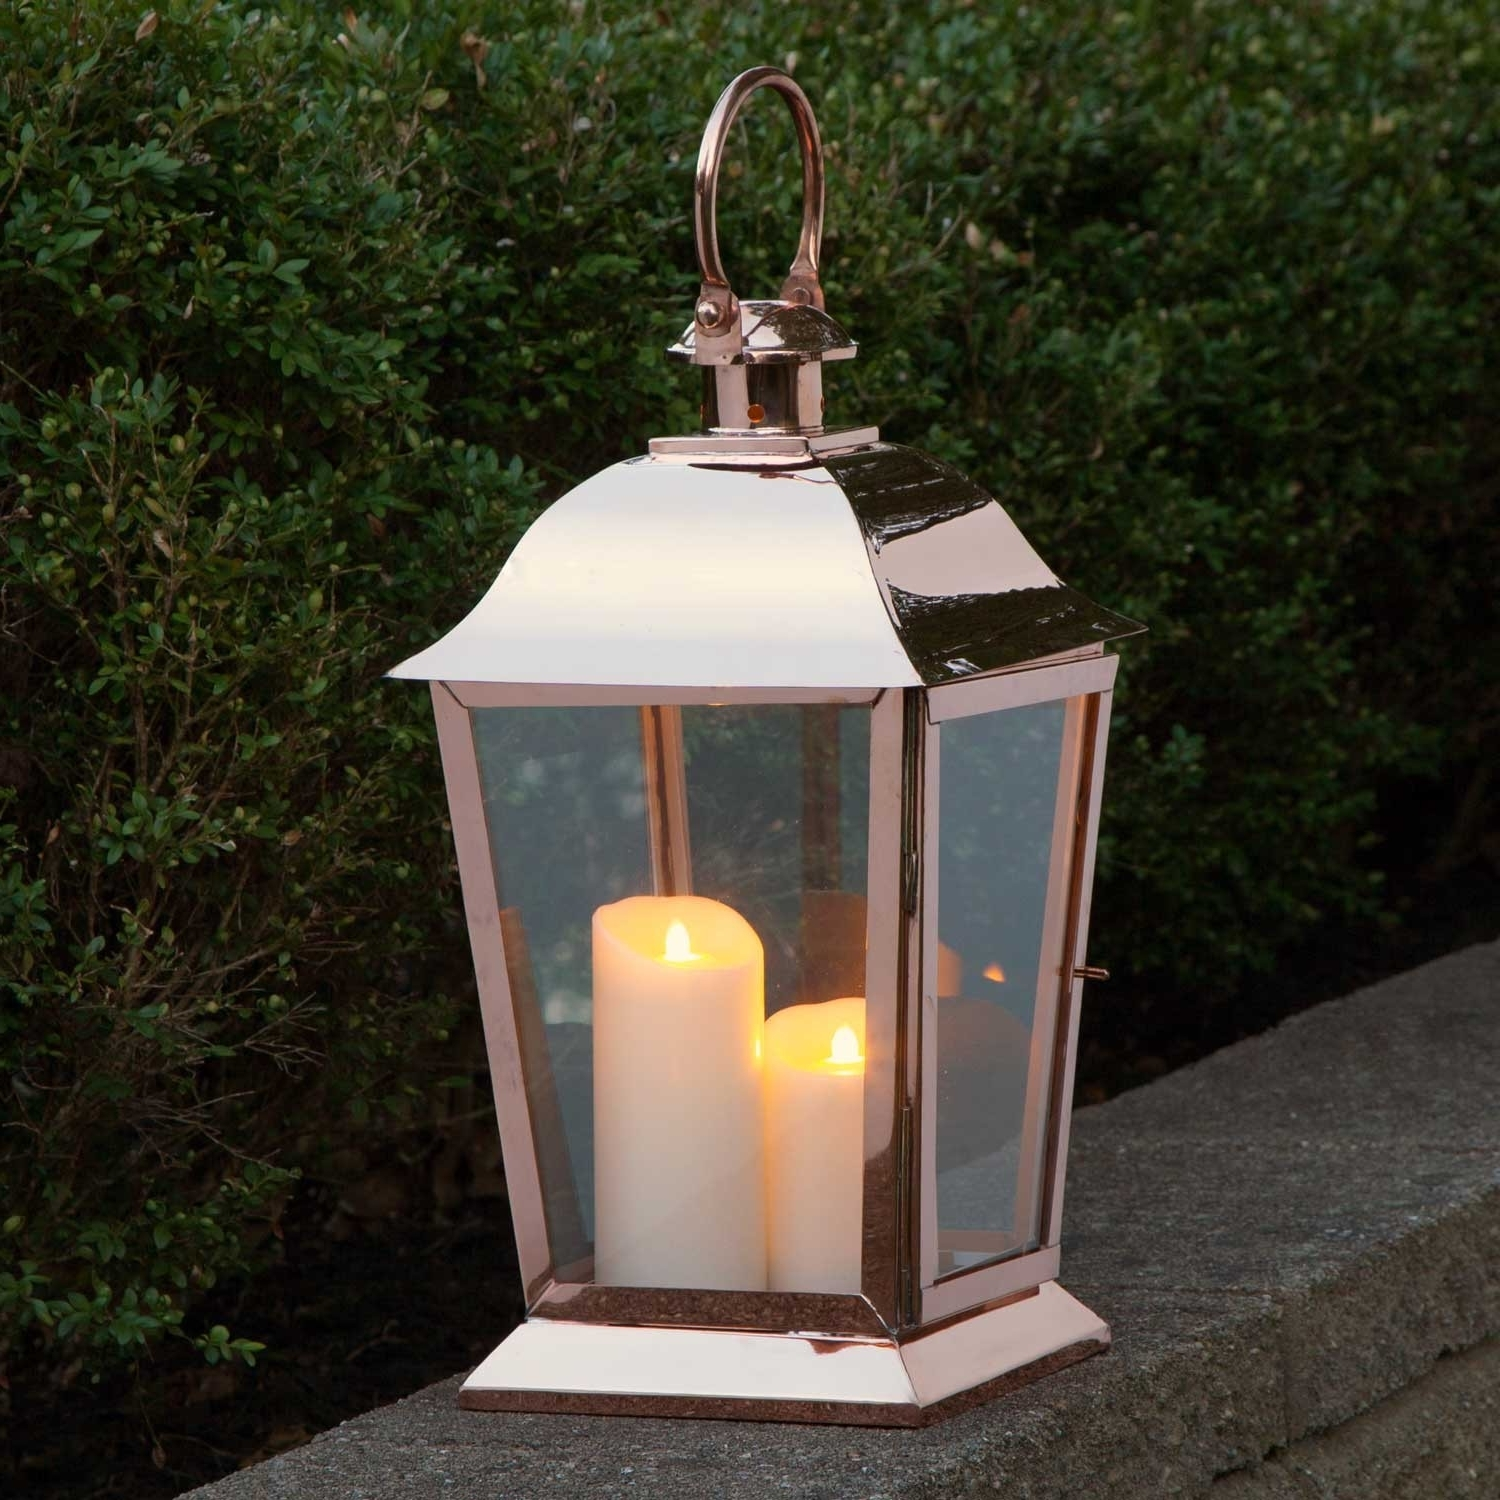 Pier One Lanterns Hanging With Candles Large Outdoor Rustic For Throughout Preferred Inexpensive Outdoor Lanterns (View 10 of 20)